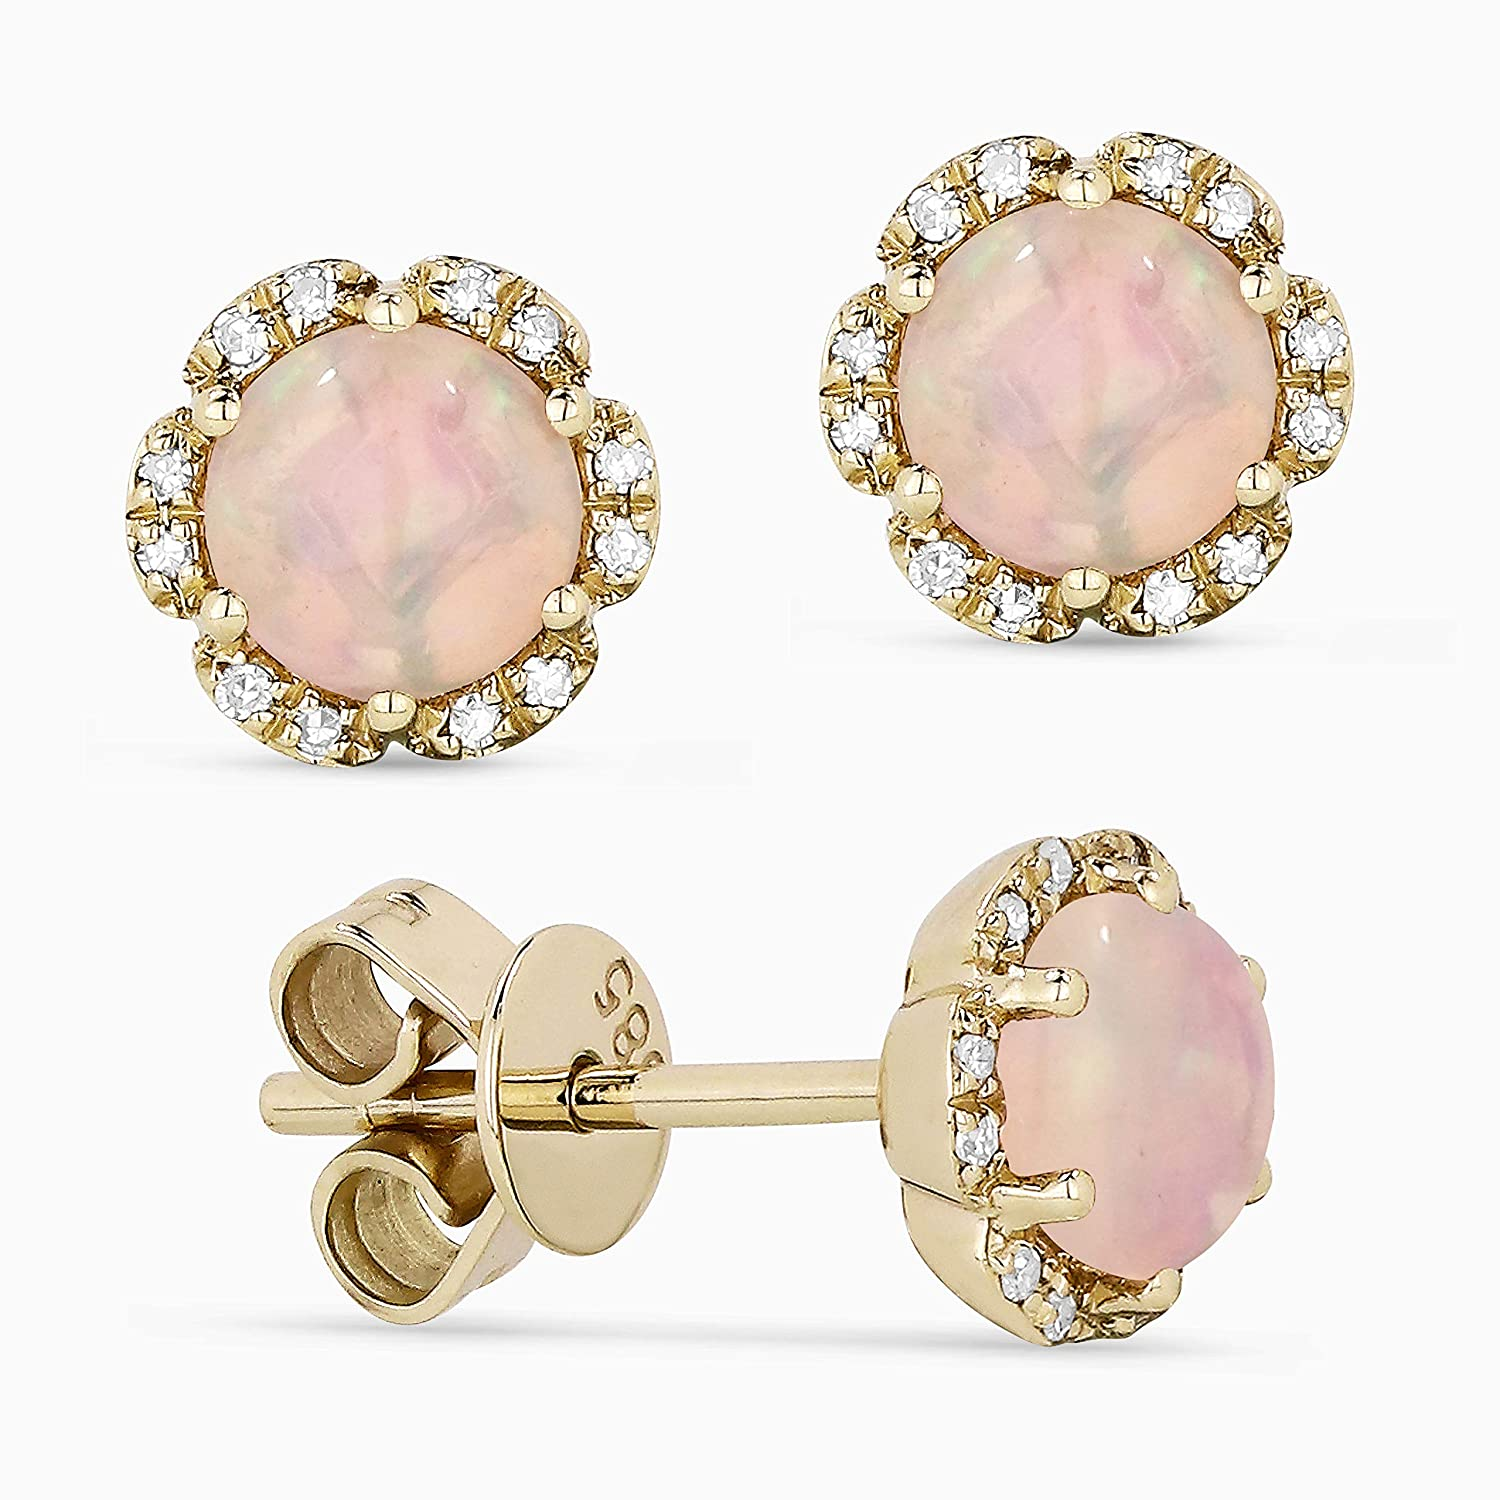 14K Gold Round Brilliant Shape Gemstone and White Diamond Stud Earrings